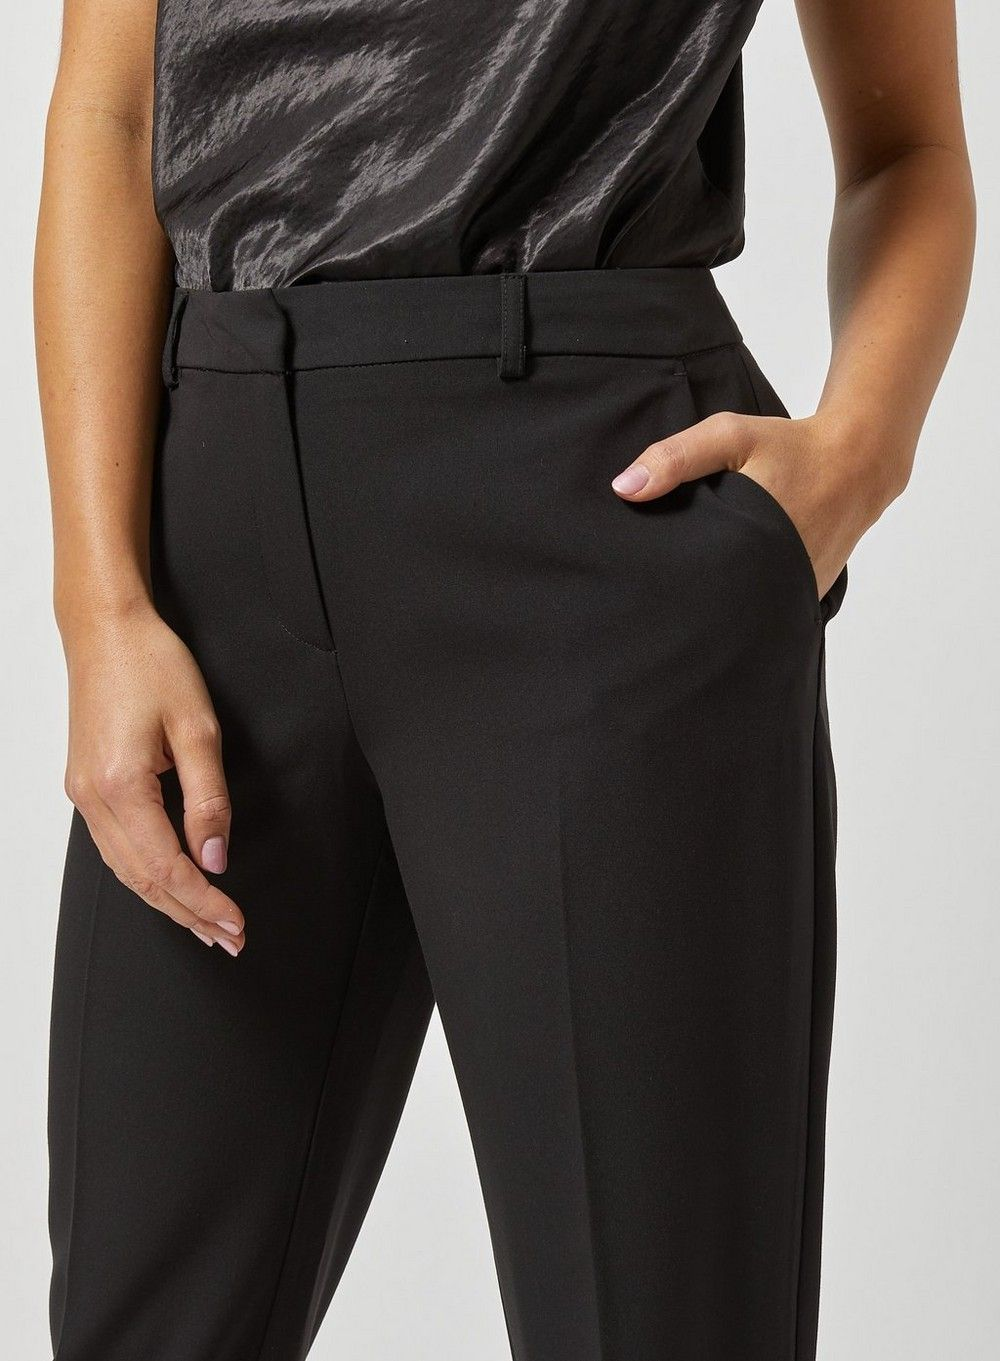 Dorothy Perkins Womens Petite Black Ankle Grazer Trousers Cropped Bottoms Pants